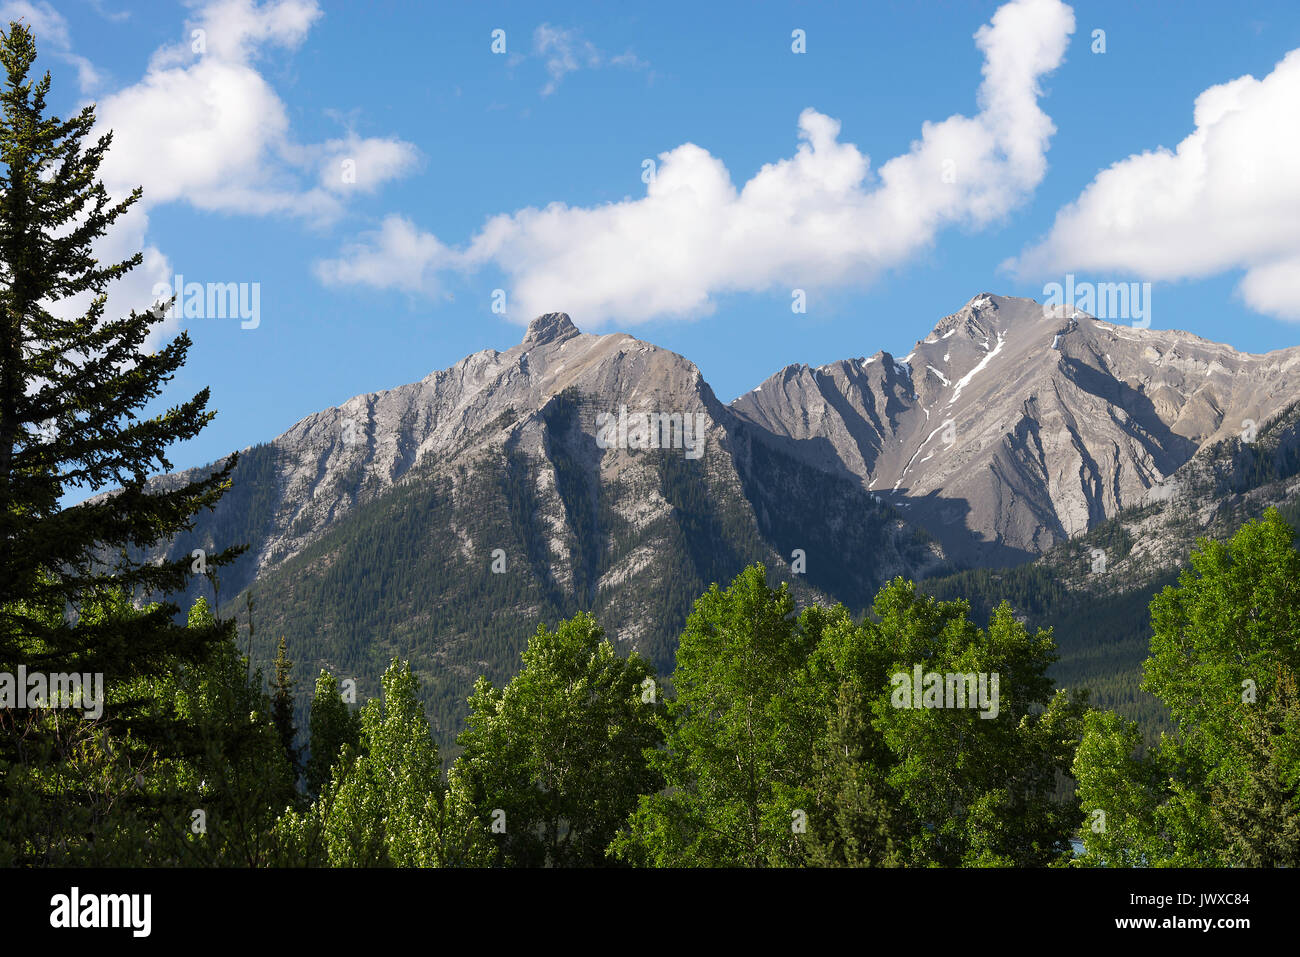 Rocky Mountain Range in Early Summer near Canmore with Deciduous Woodland and Coniferous Pine Forest Banff National Park Alberta Canada - Stock Image